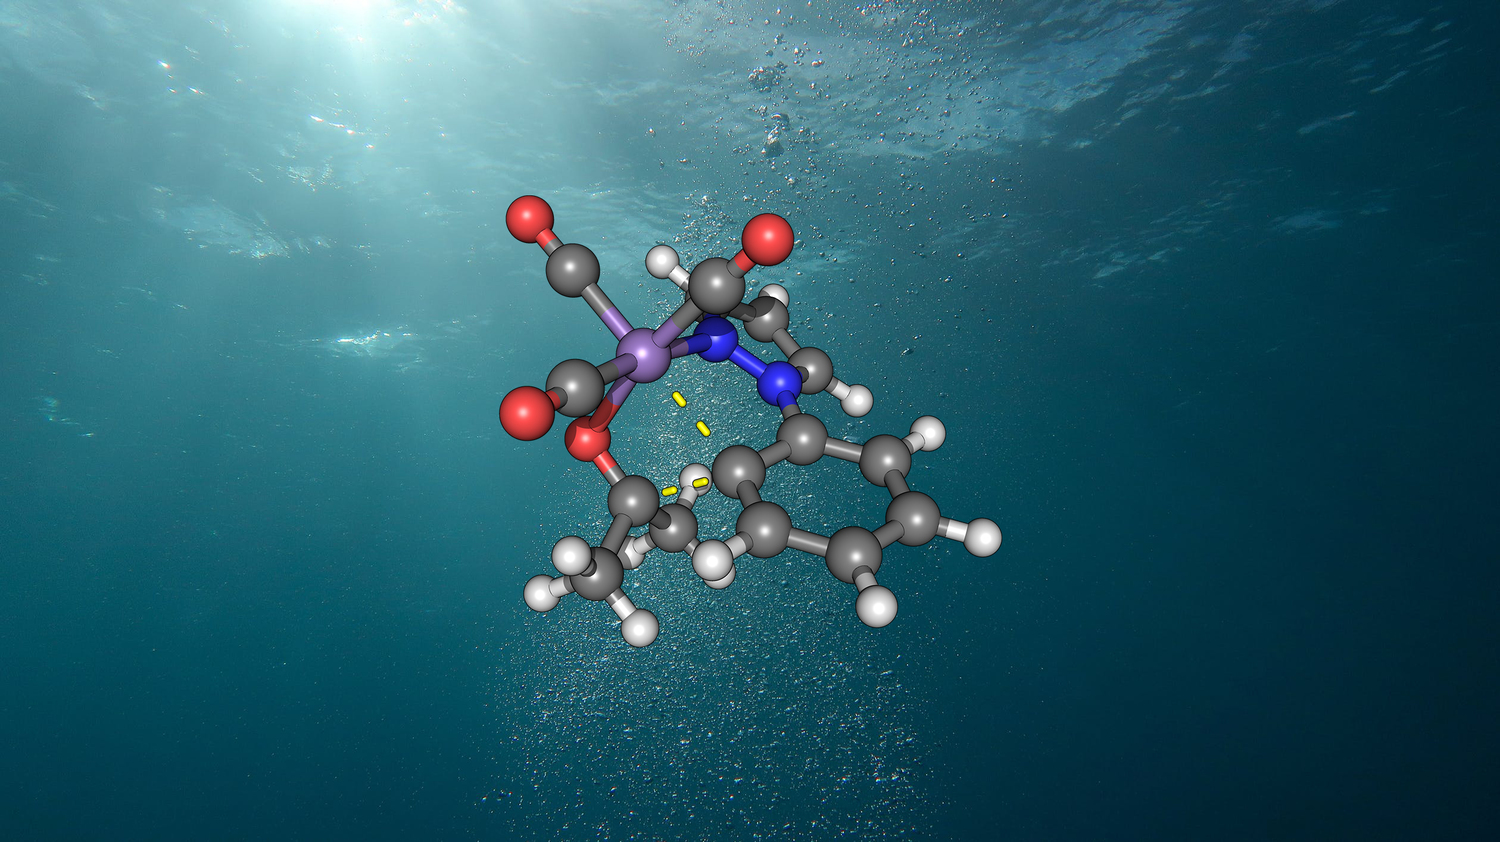 Structure of the active manganese catalyst in water.